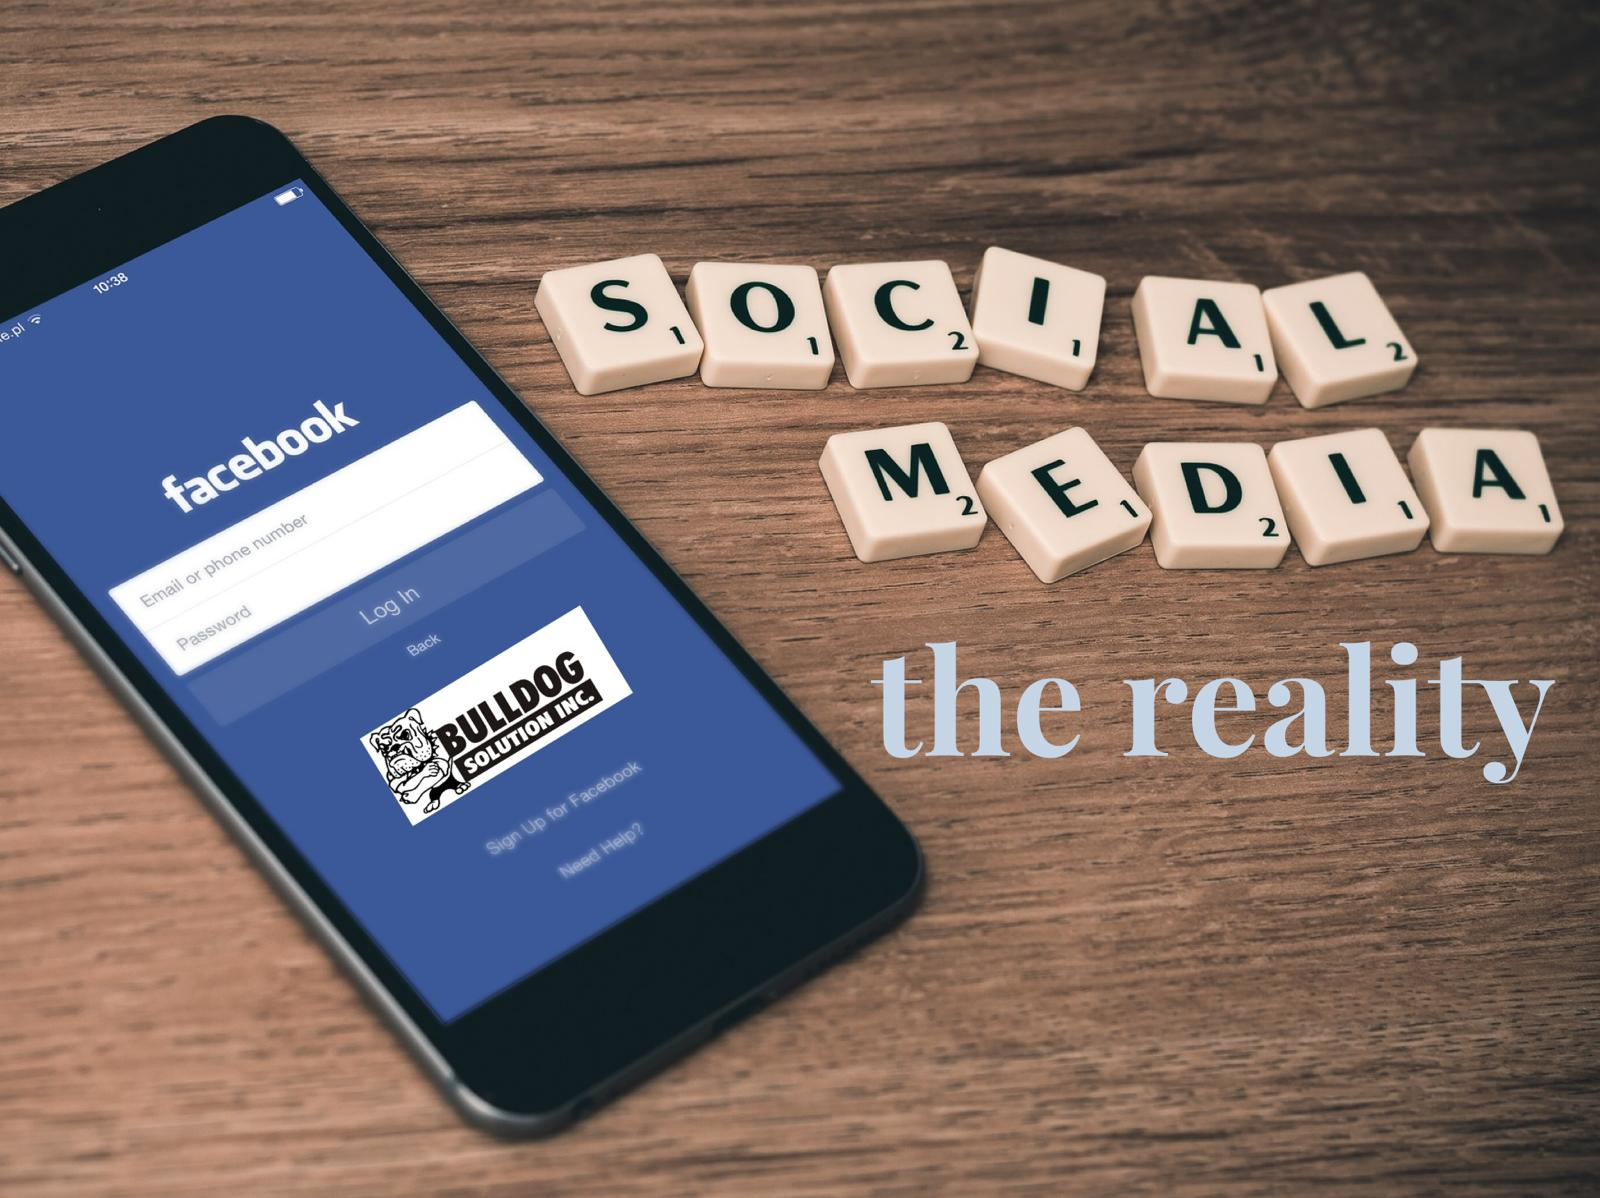 Social Media Creates a Surreal Reality by Bulldog Solution in Chicago, IL